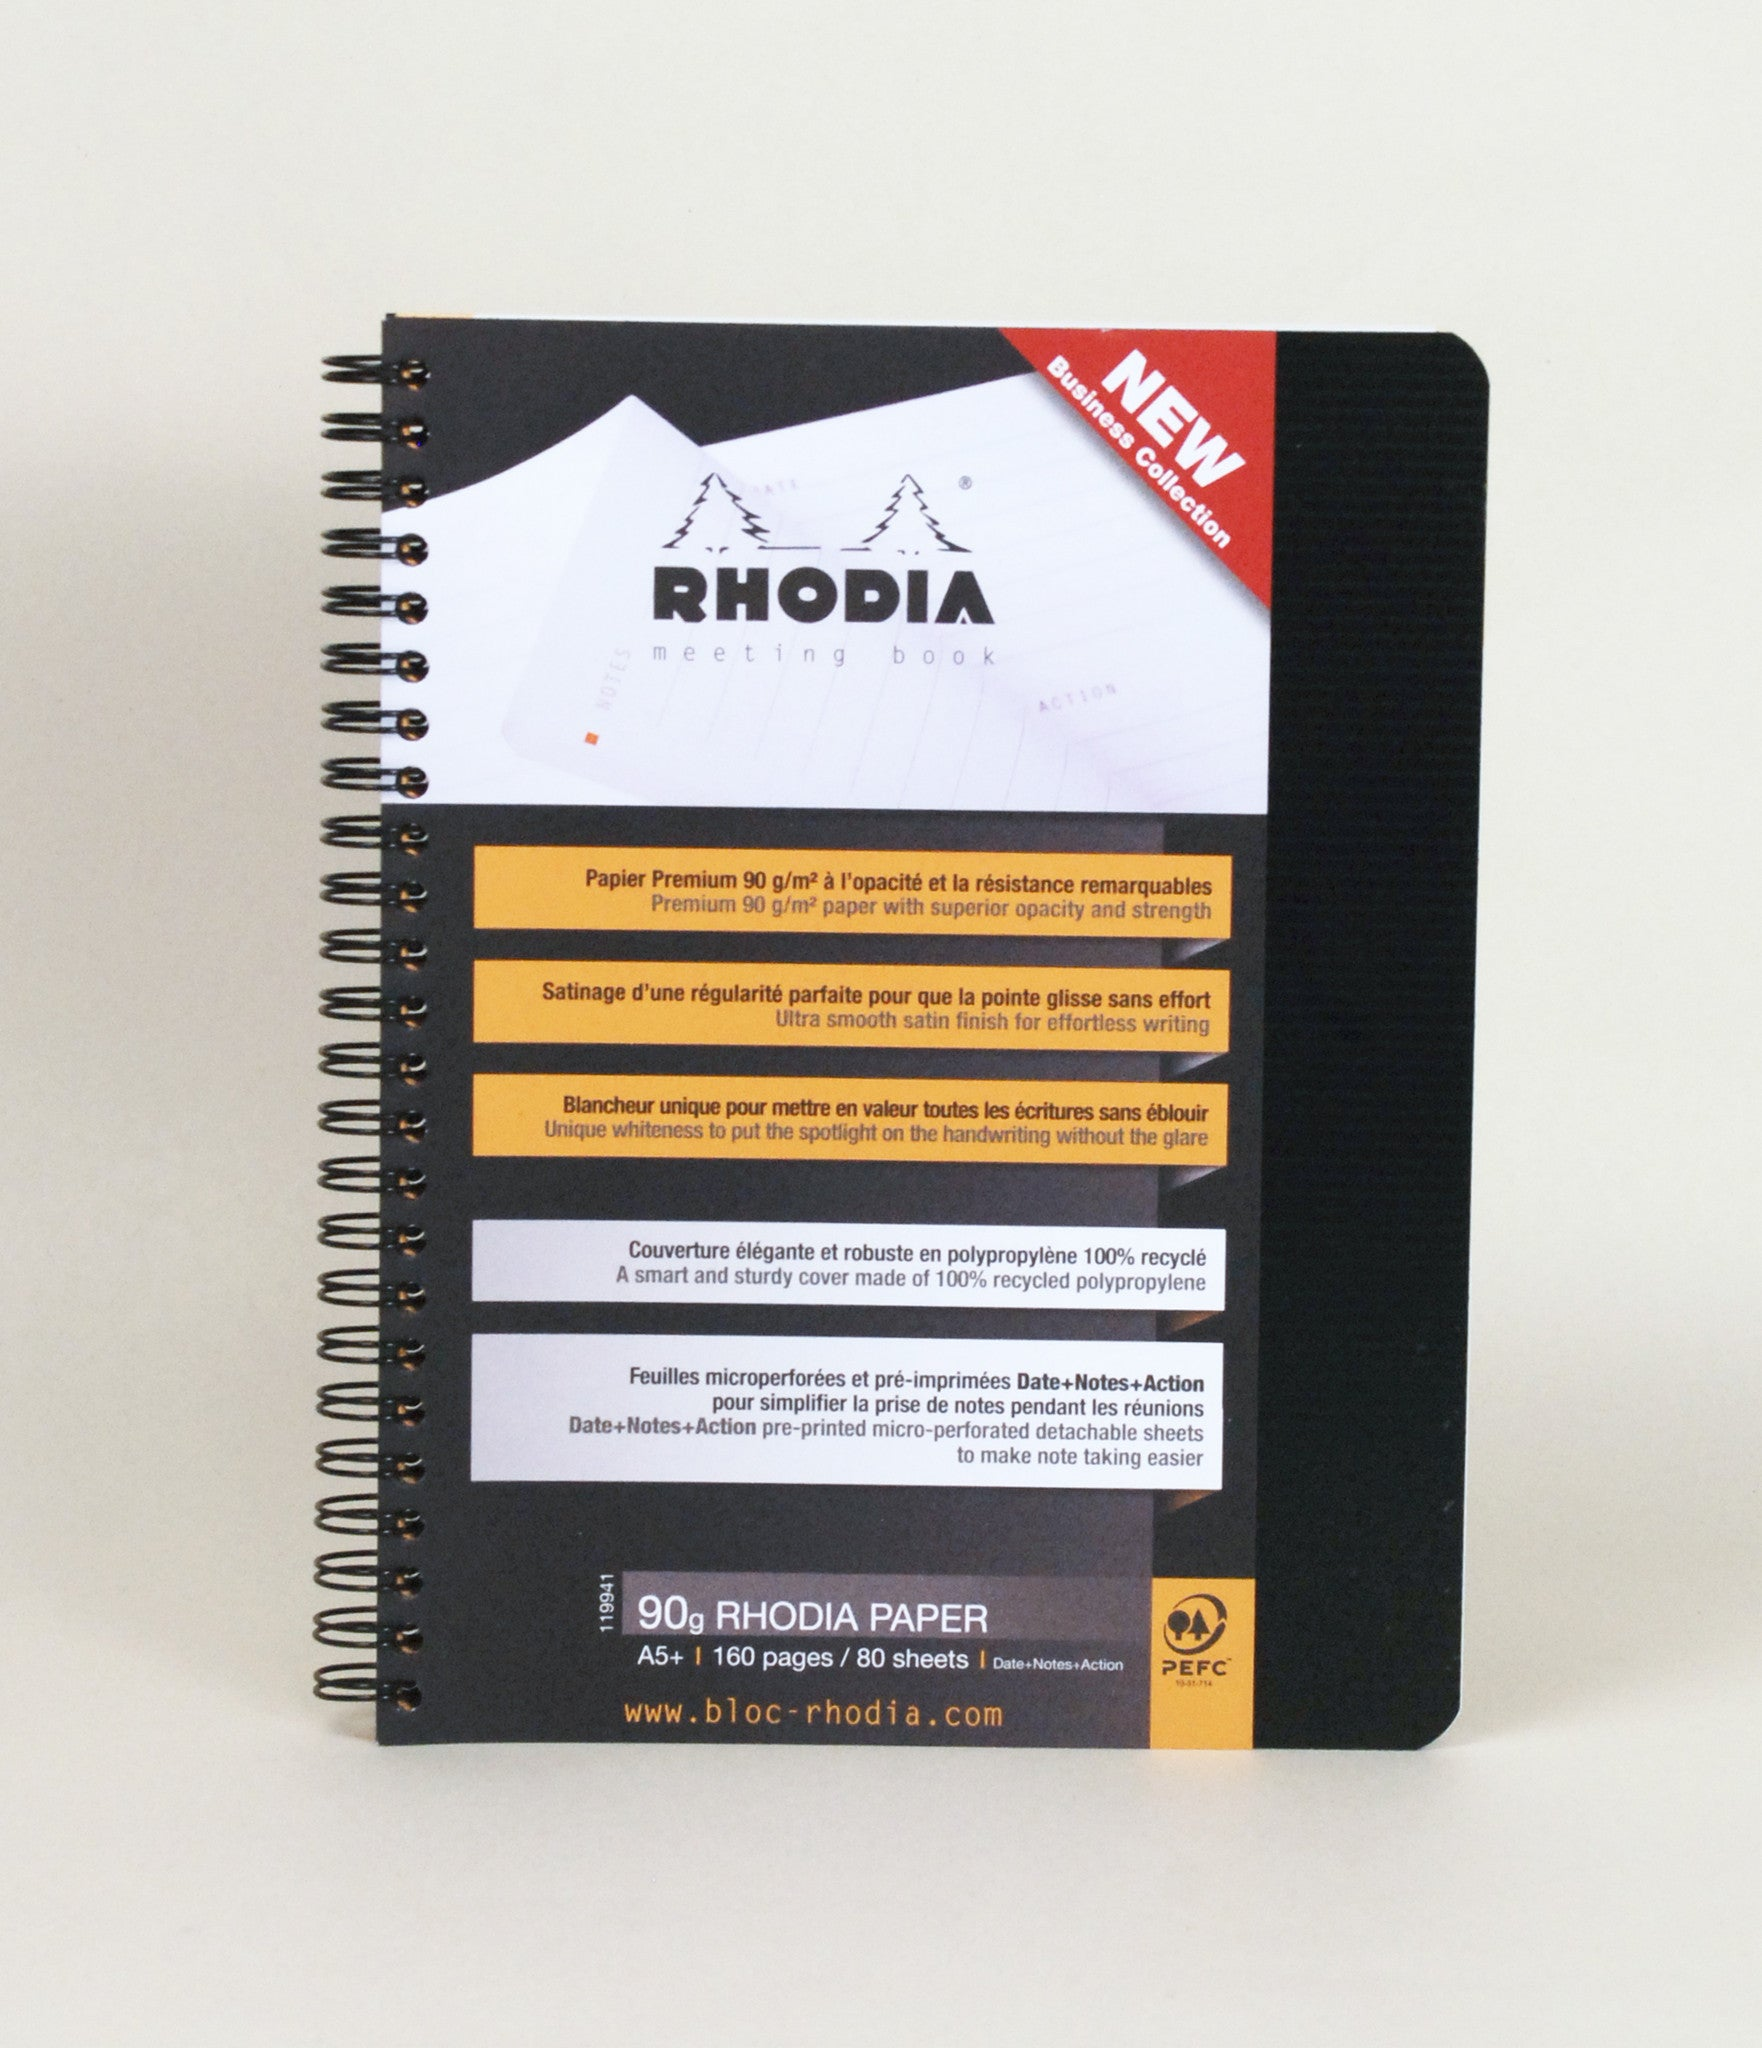 Rhodia Meeting Book A5 | BackstreetShopper.com.au